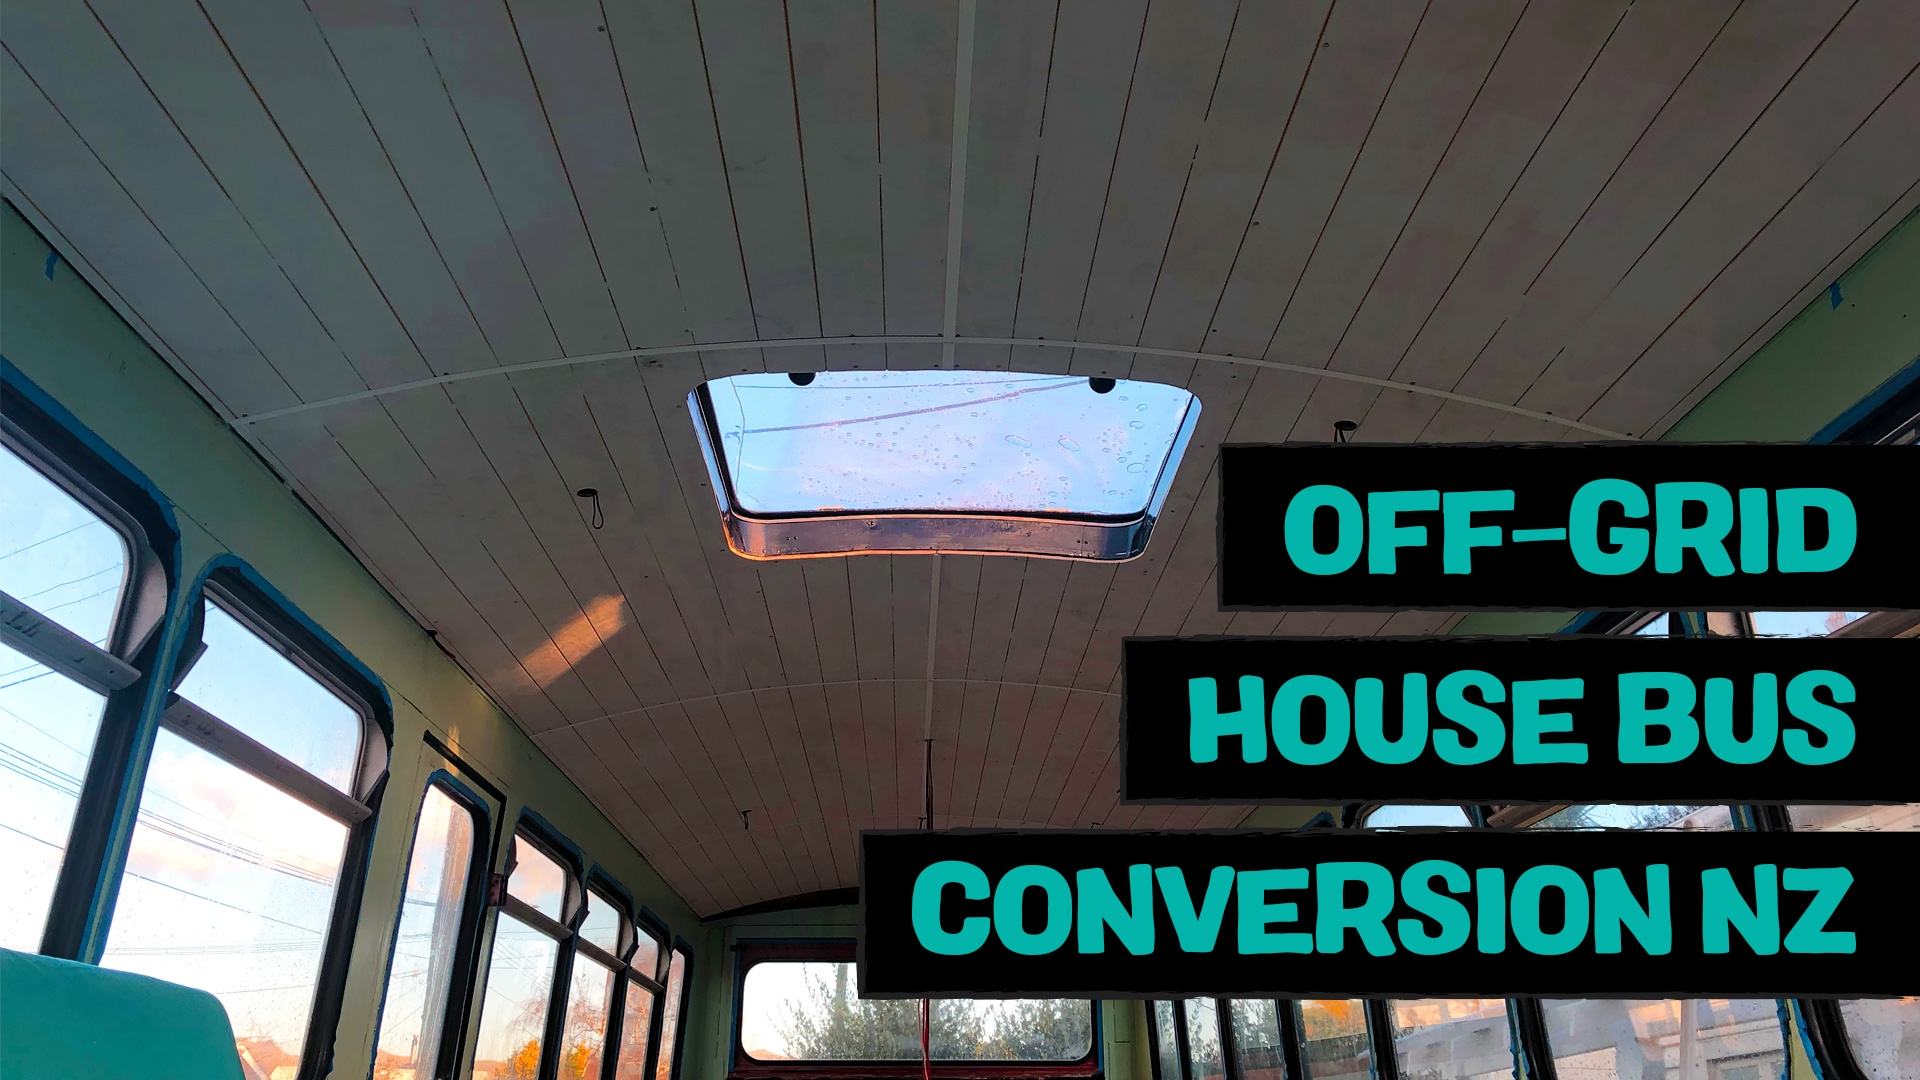 Skylight repair, ceiling installation, interior walls and vintage belted sofa